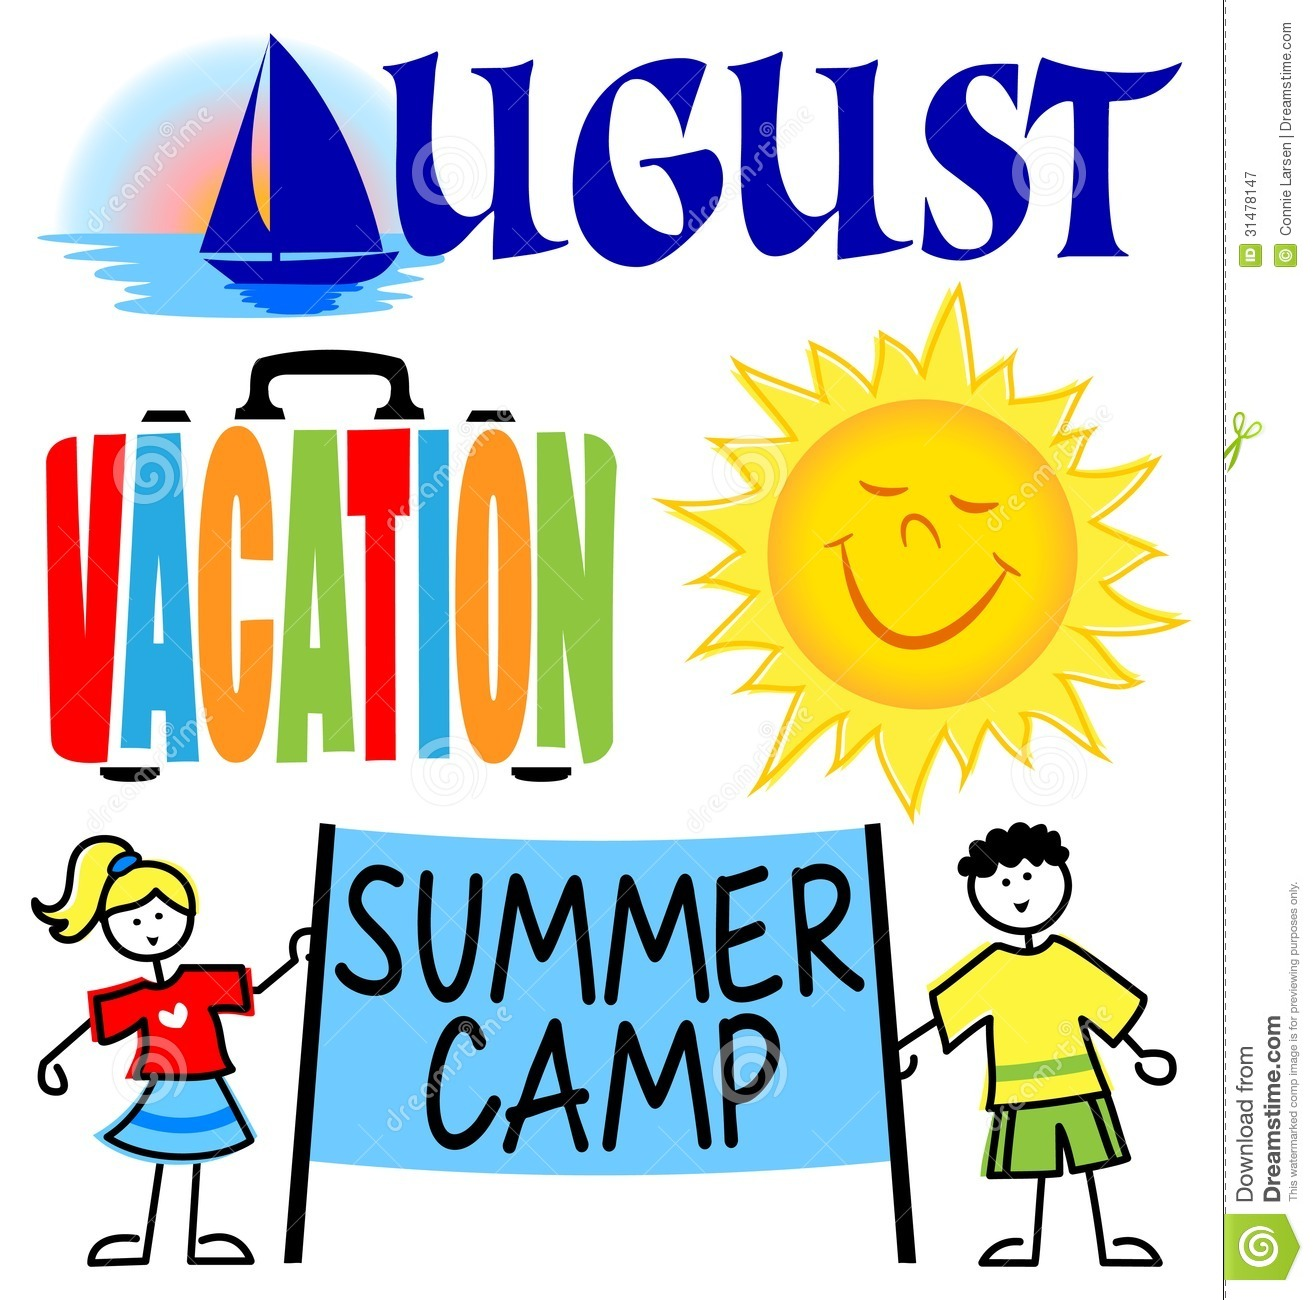 July events . August clipart cartoon